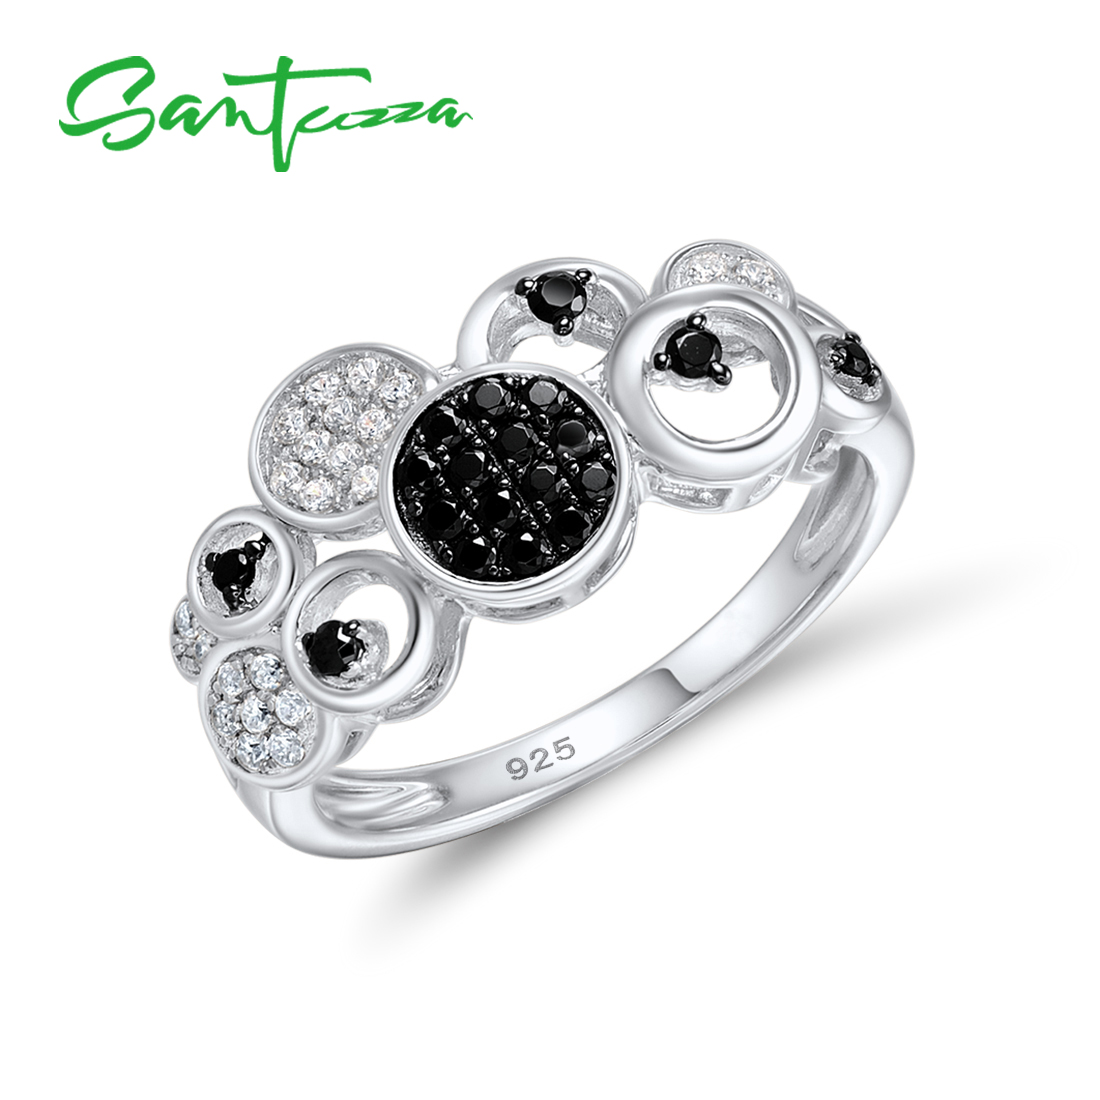 SANTUZZA Silver Rings For Women Authentic 925 Sterling Silver Round Black Spinel White CZ Concise Trendy Party Ring Fine Jewelry